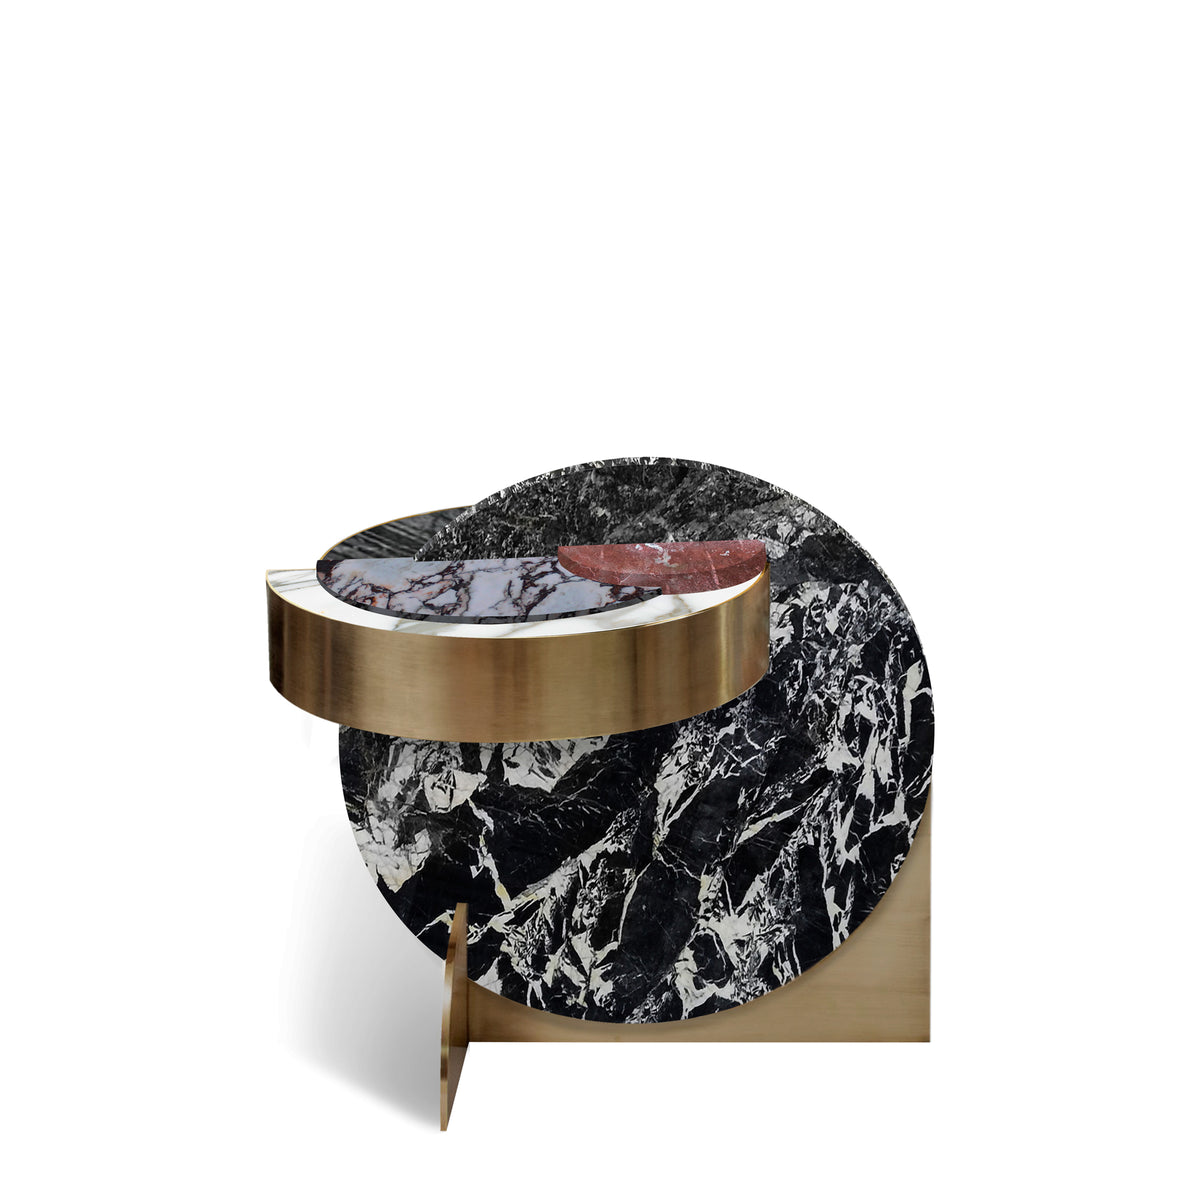 FULL MOON SIDE TABLE - ALPINE